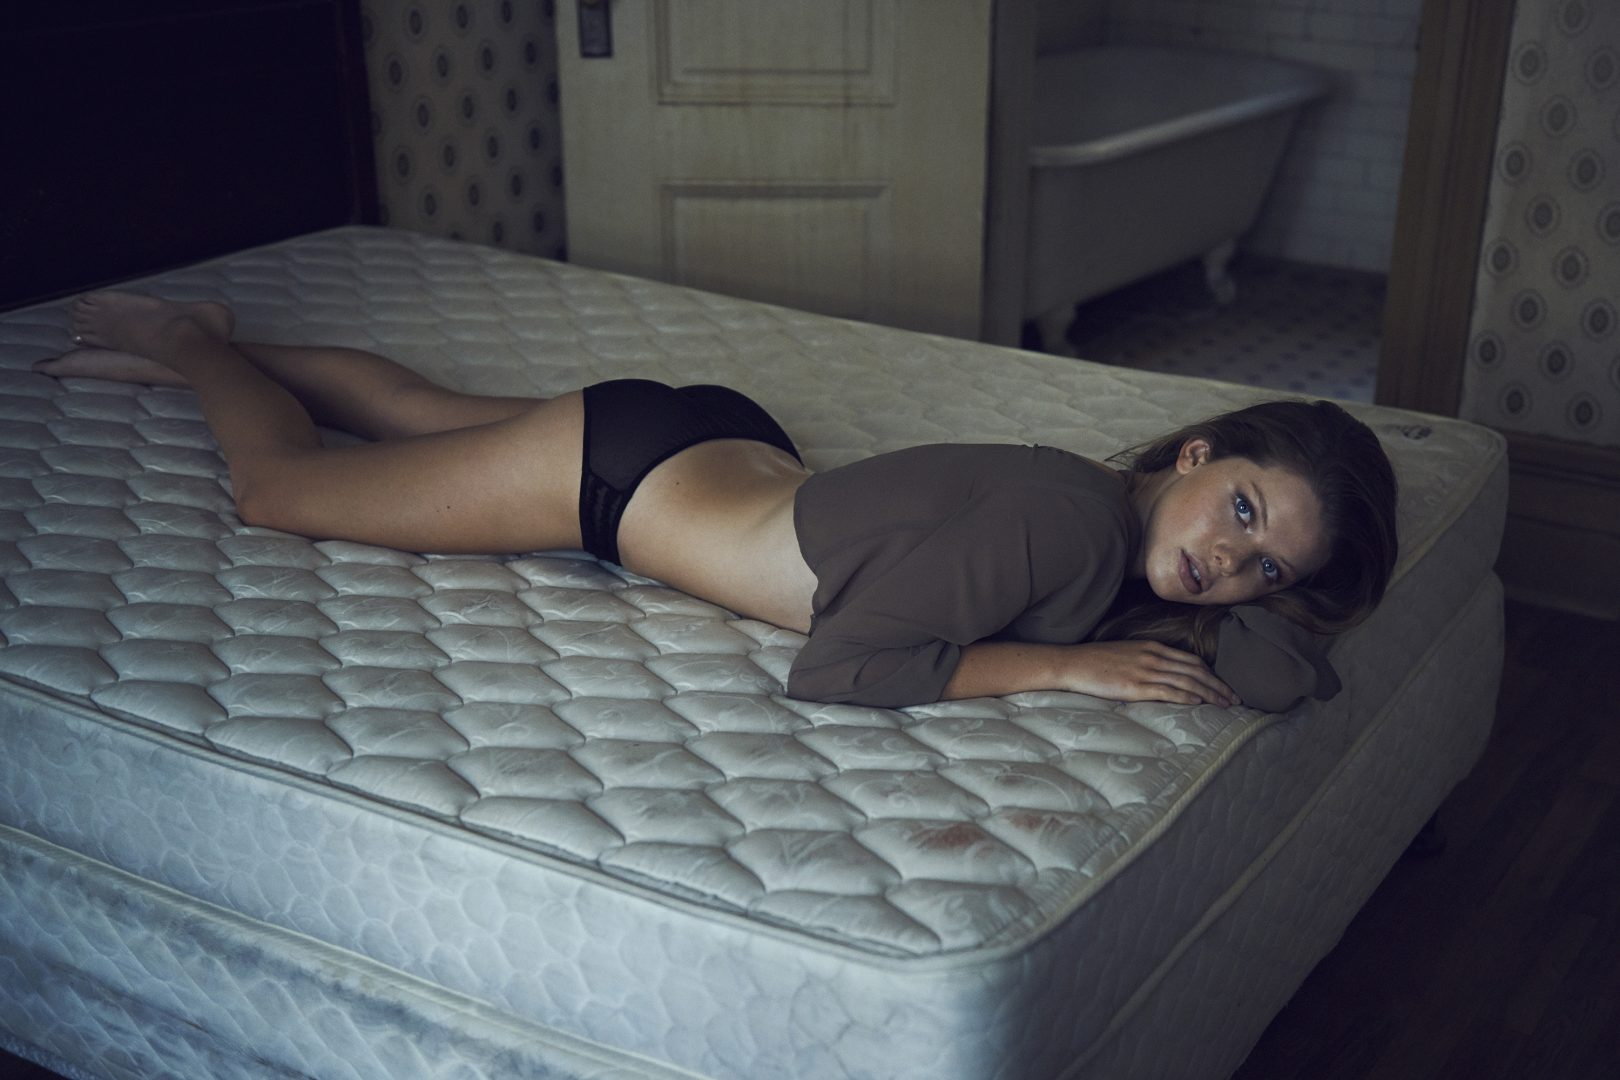 Girl on lingerie lying on bed in old hotel room by Stefan Rappo